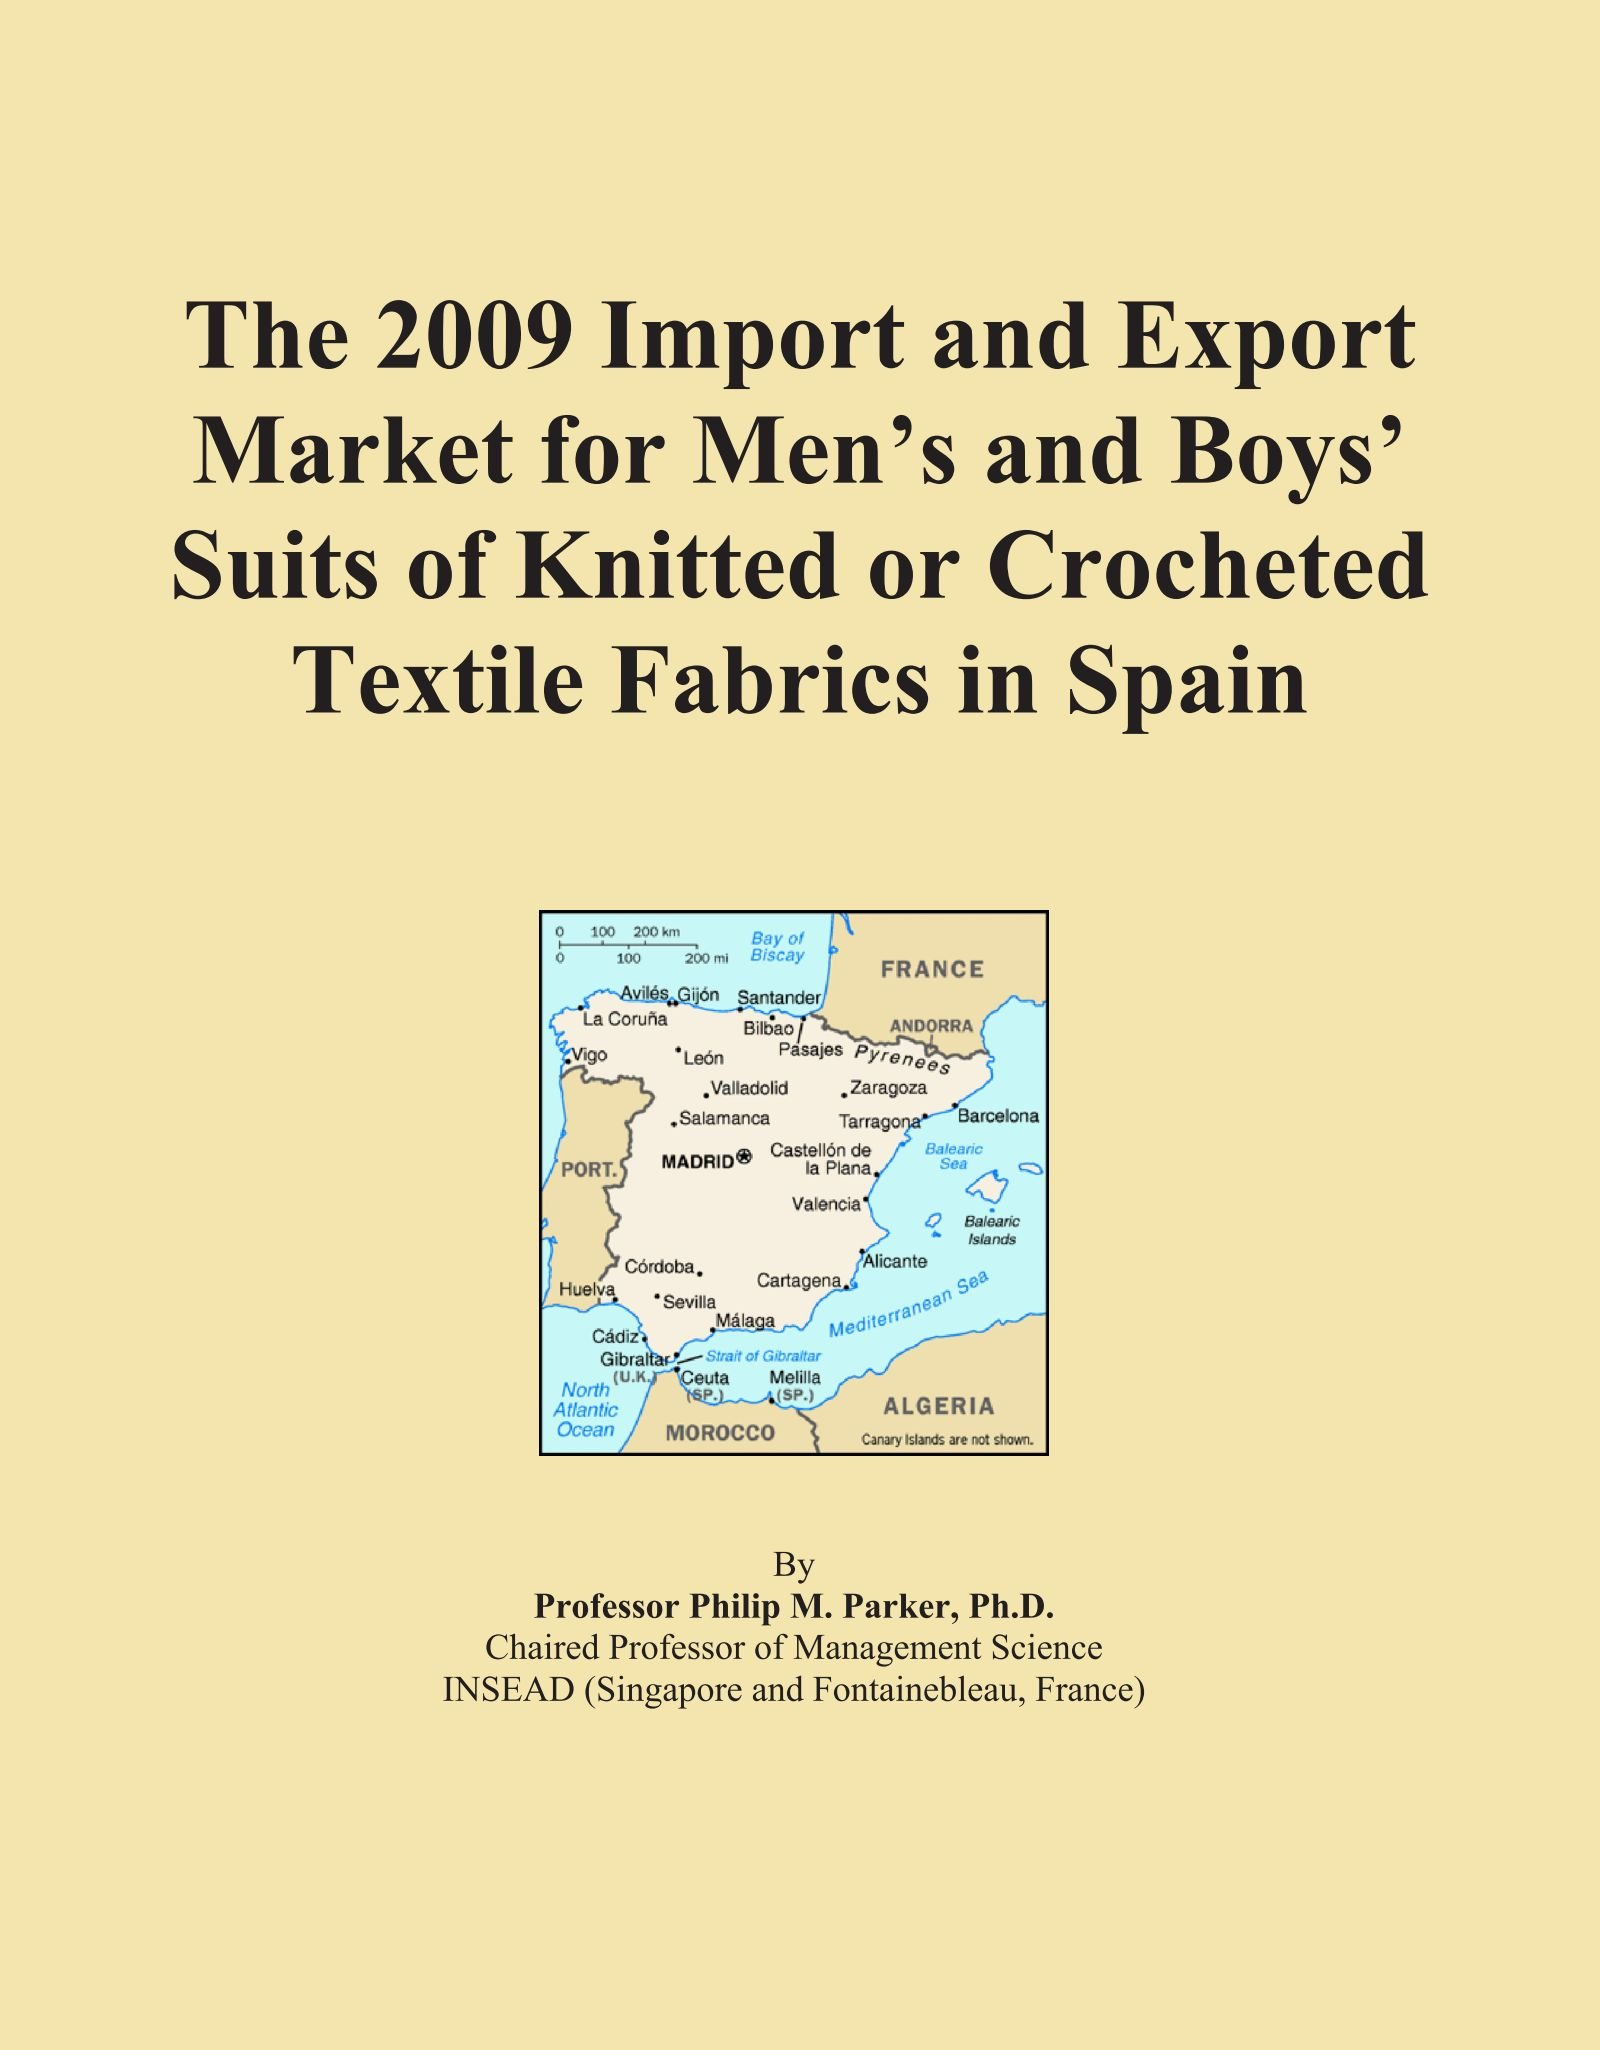 The 2009 Import and Export Market for Men's and Boys' Suits of Knitted or Crocheted Textile Fabrics in Spain ebook